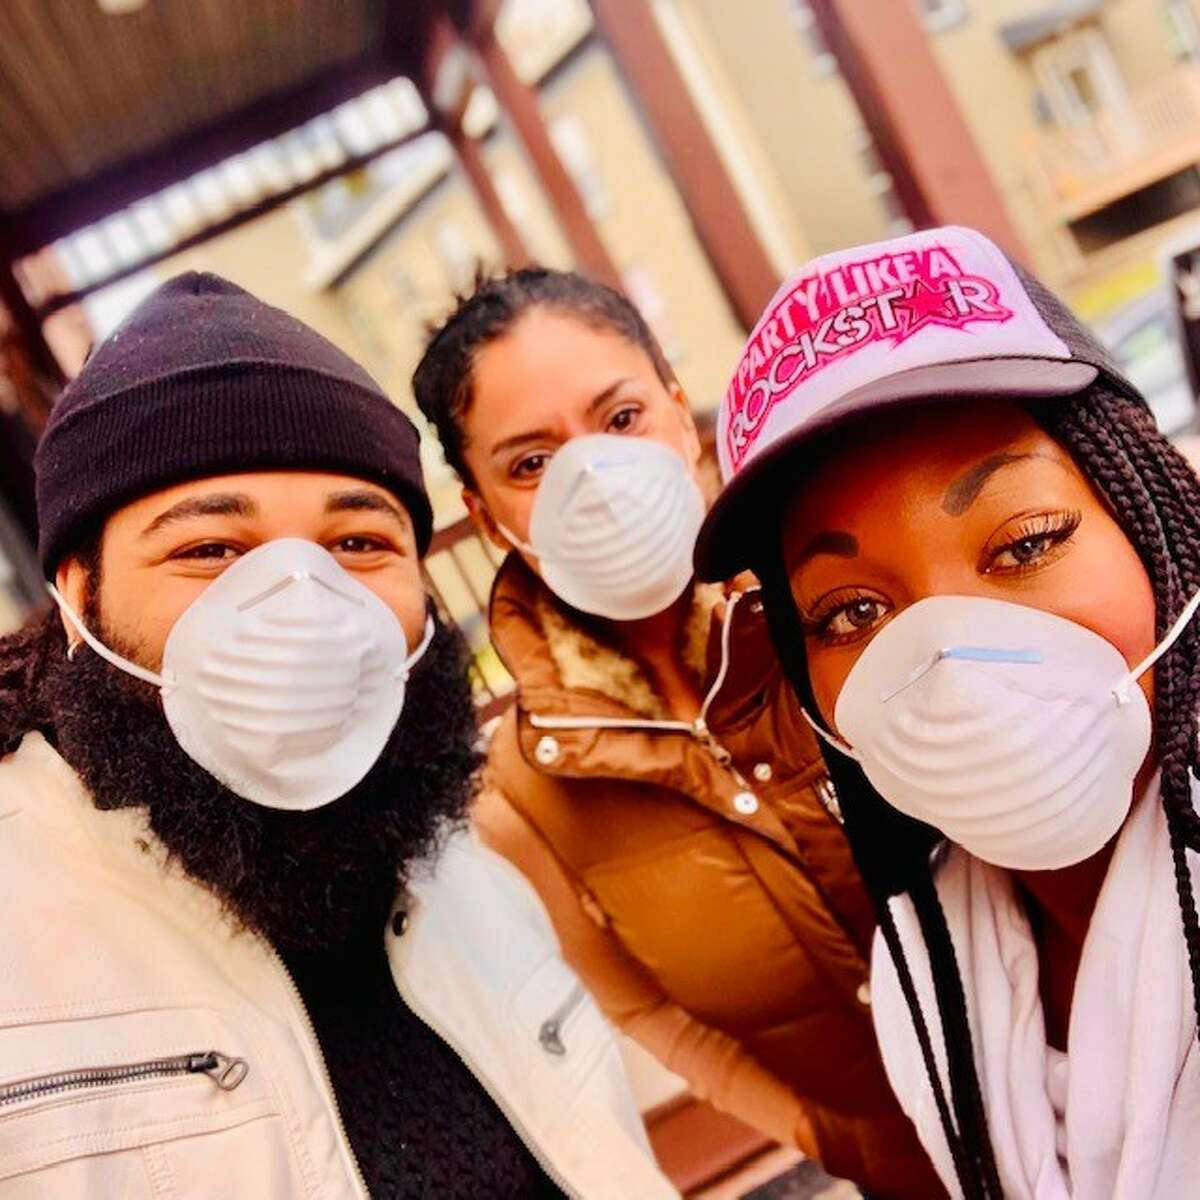 Tiffany Orner, right, and other volunteers during coronavirus efforts/ (Provided)